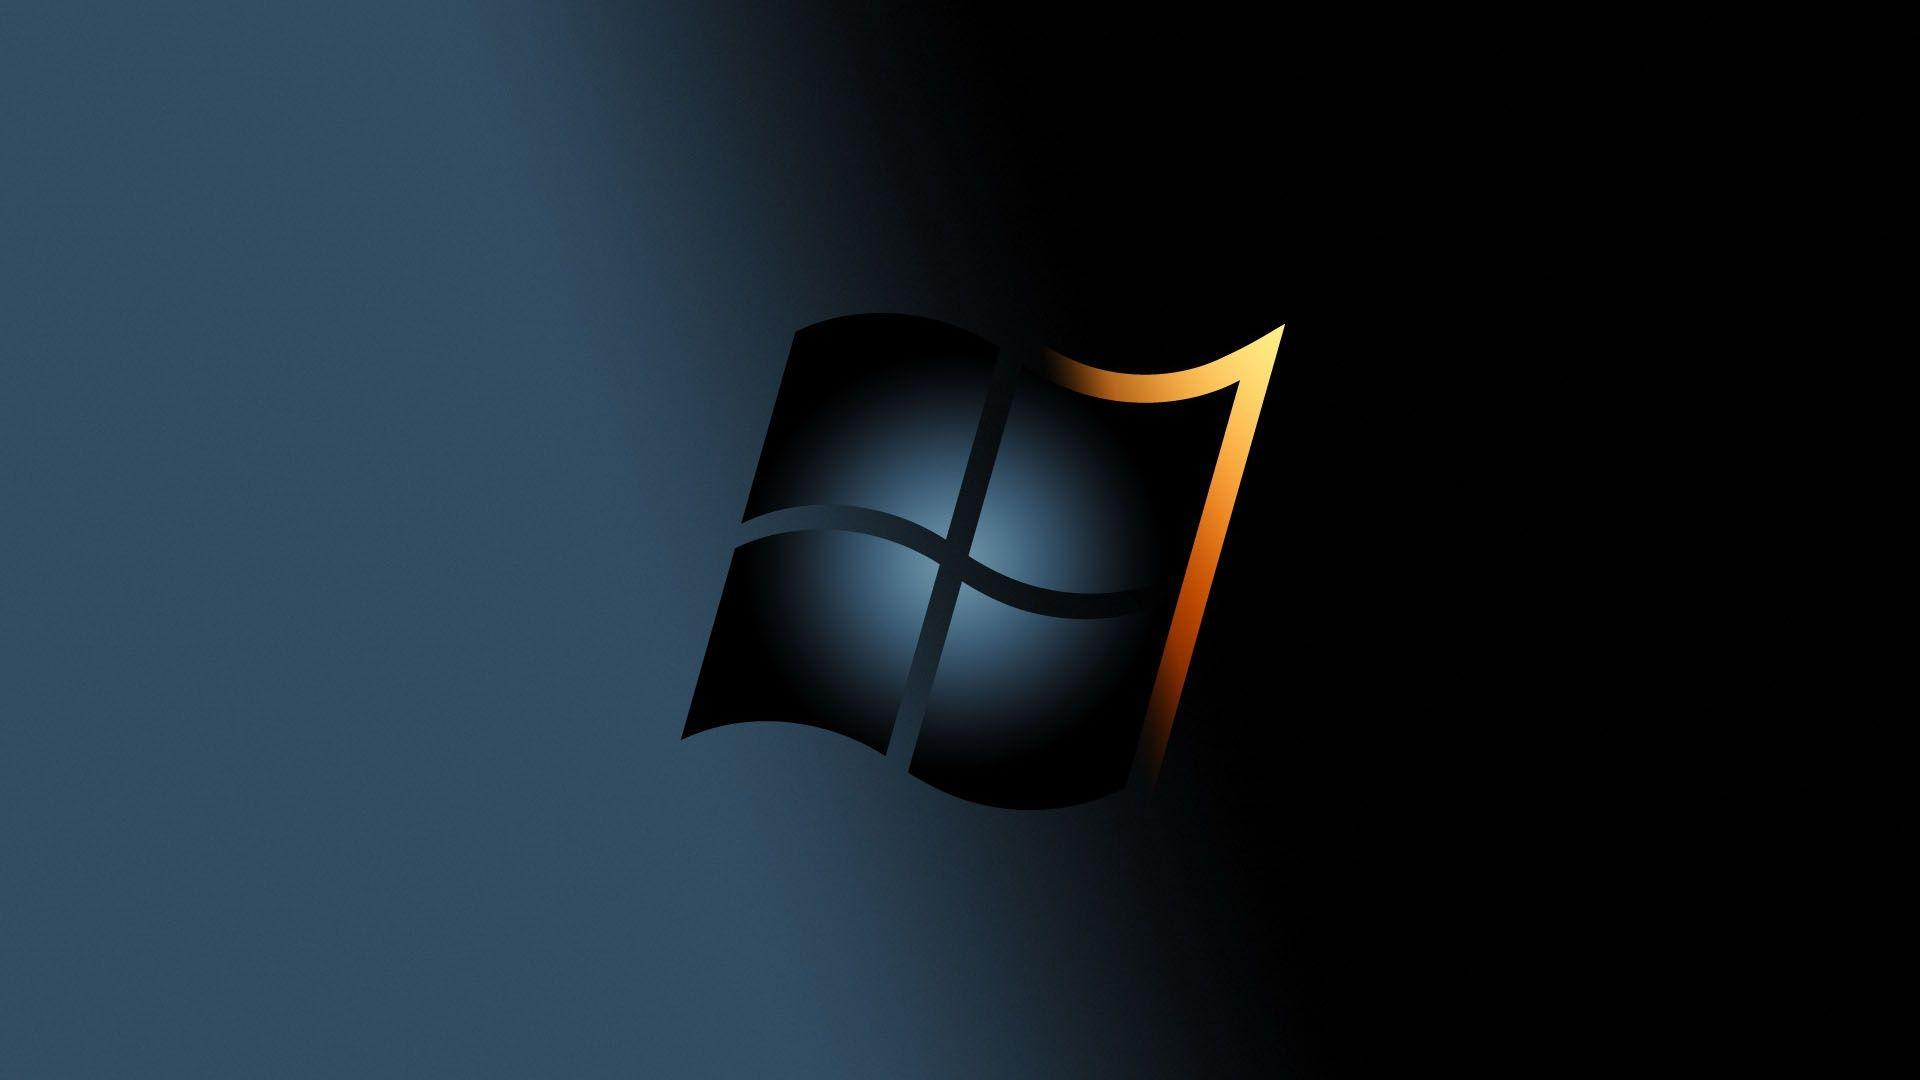 New Win7 HD Wallpapers - HD Wallpapers Inn